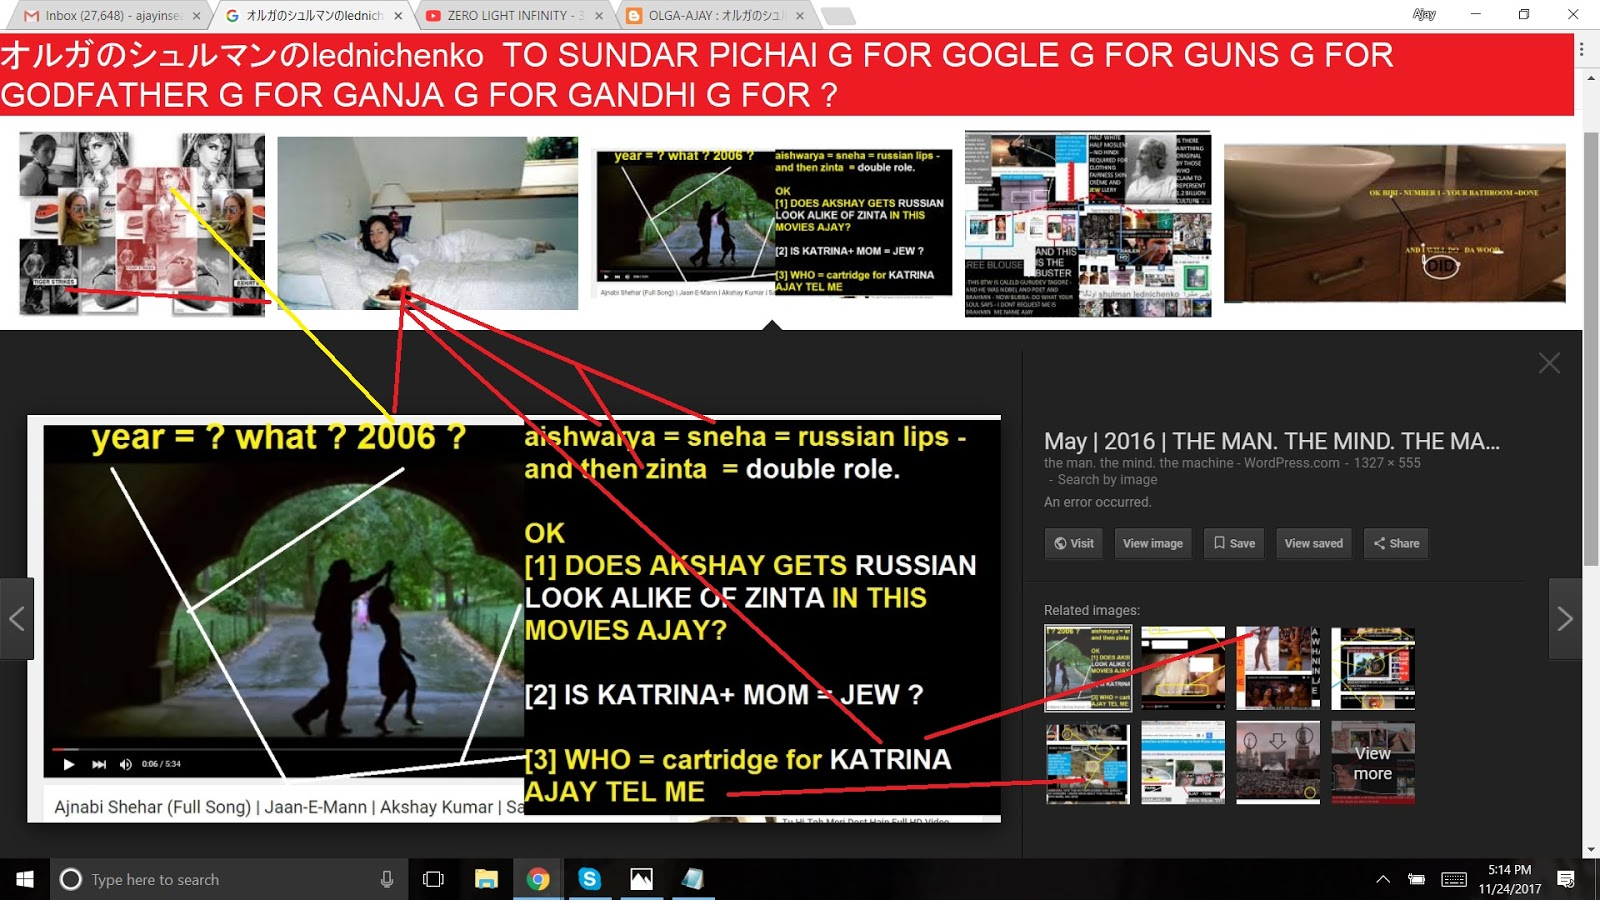 オルガのシュルマンのlednichenko TO SUNDAR PICHAI G FOR GOGLE G FOR GUNS G FOR GODFATHER G FOR GANJA G FOR GANDHI G FOR